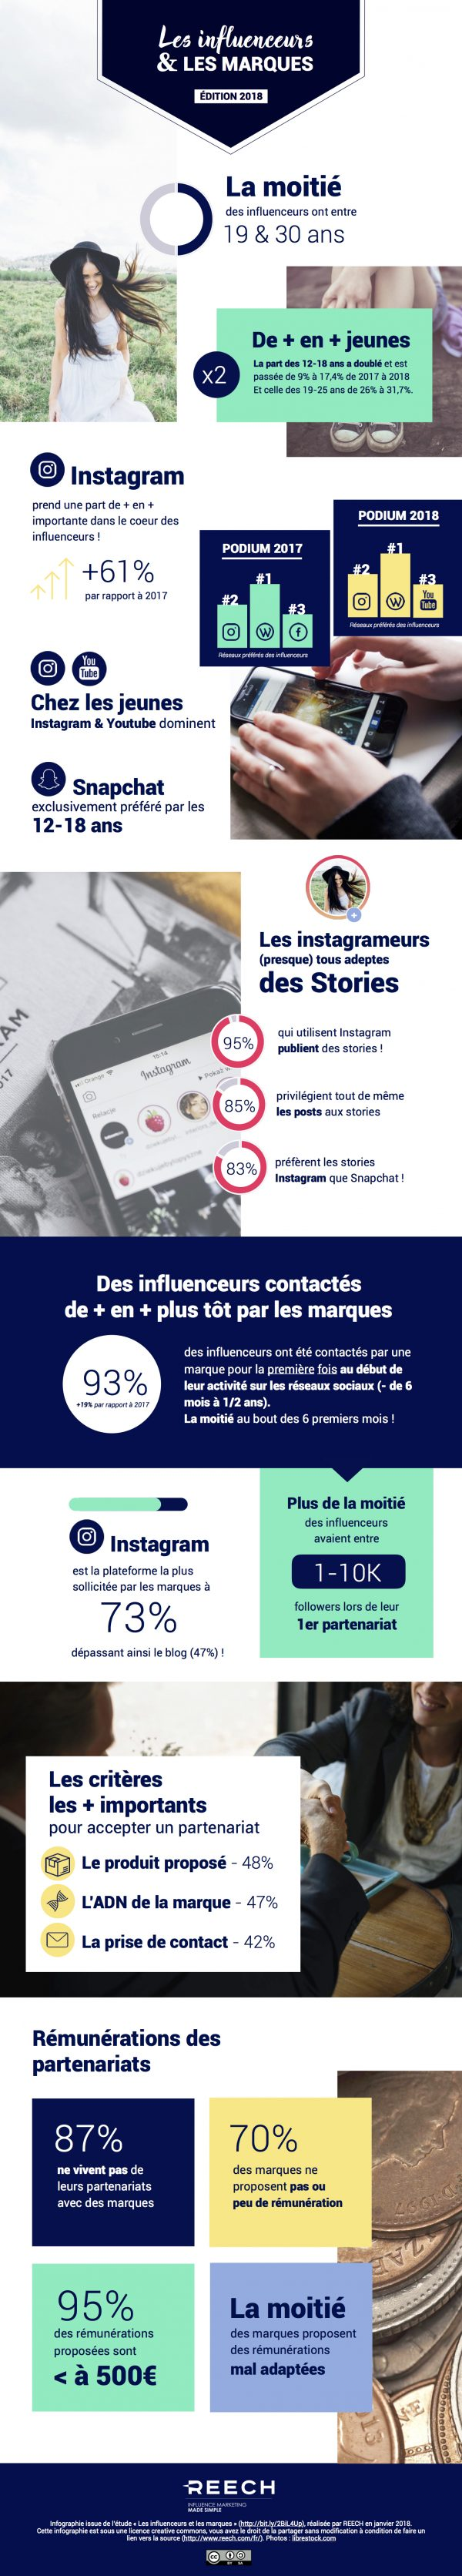 Infographie Marketing influence en 2018 : les influenceurs et les marques